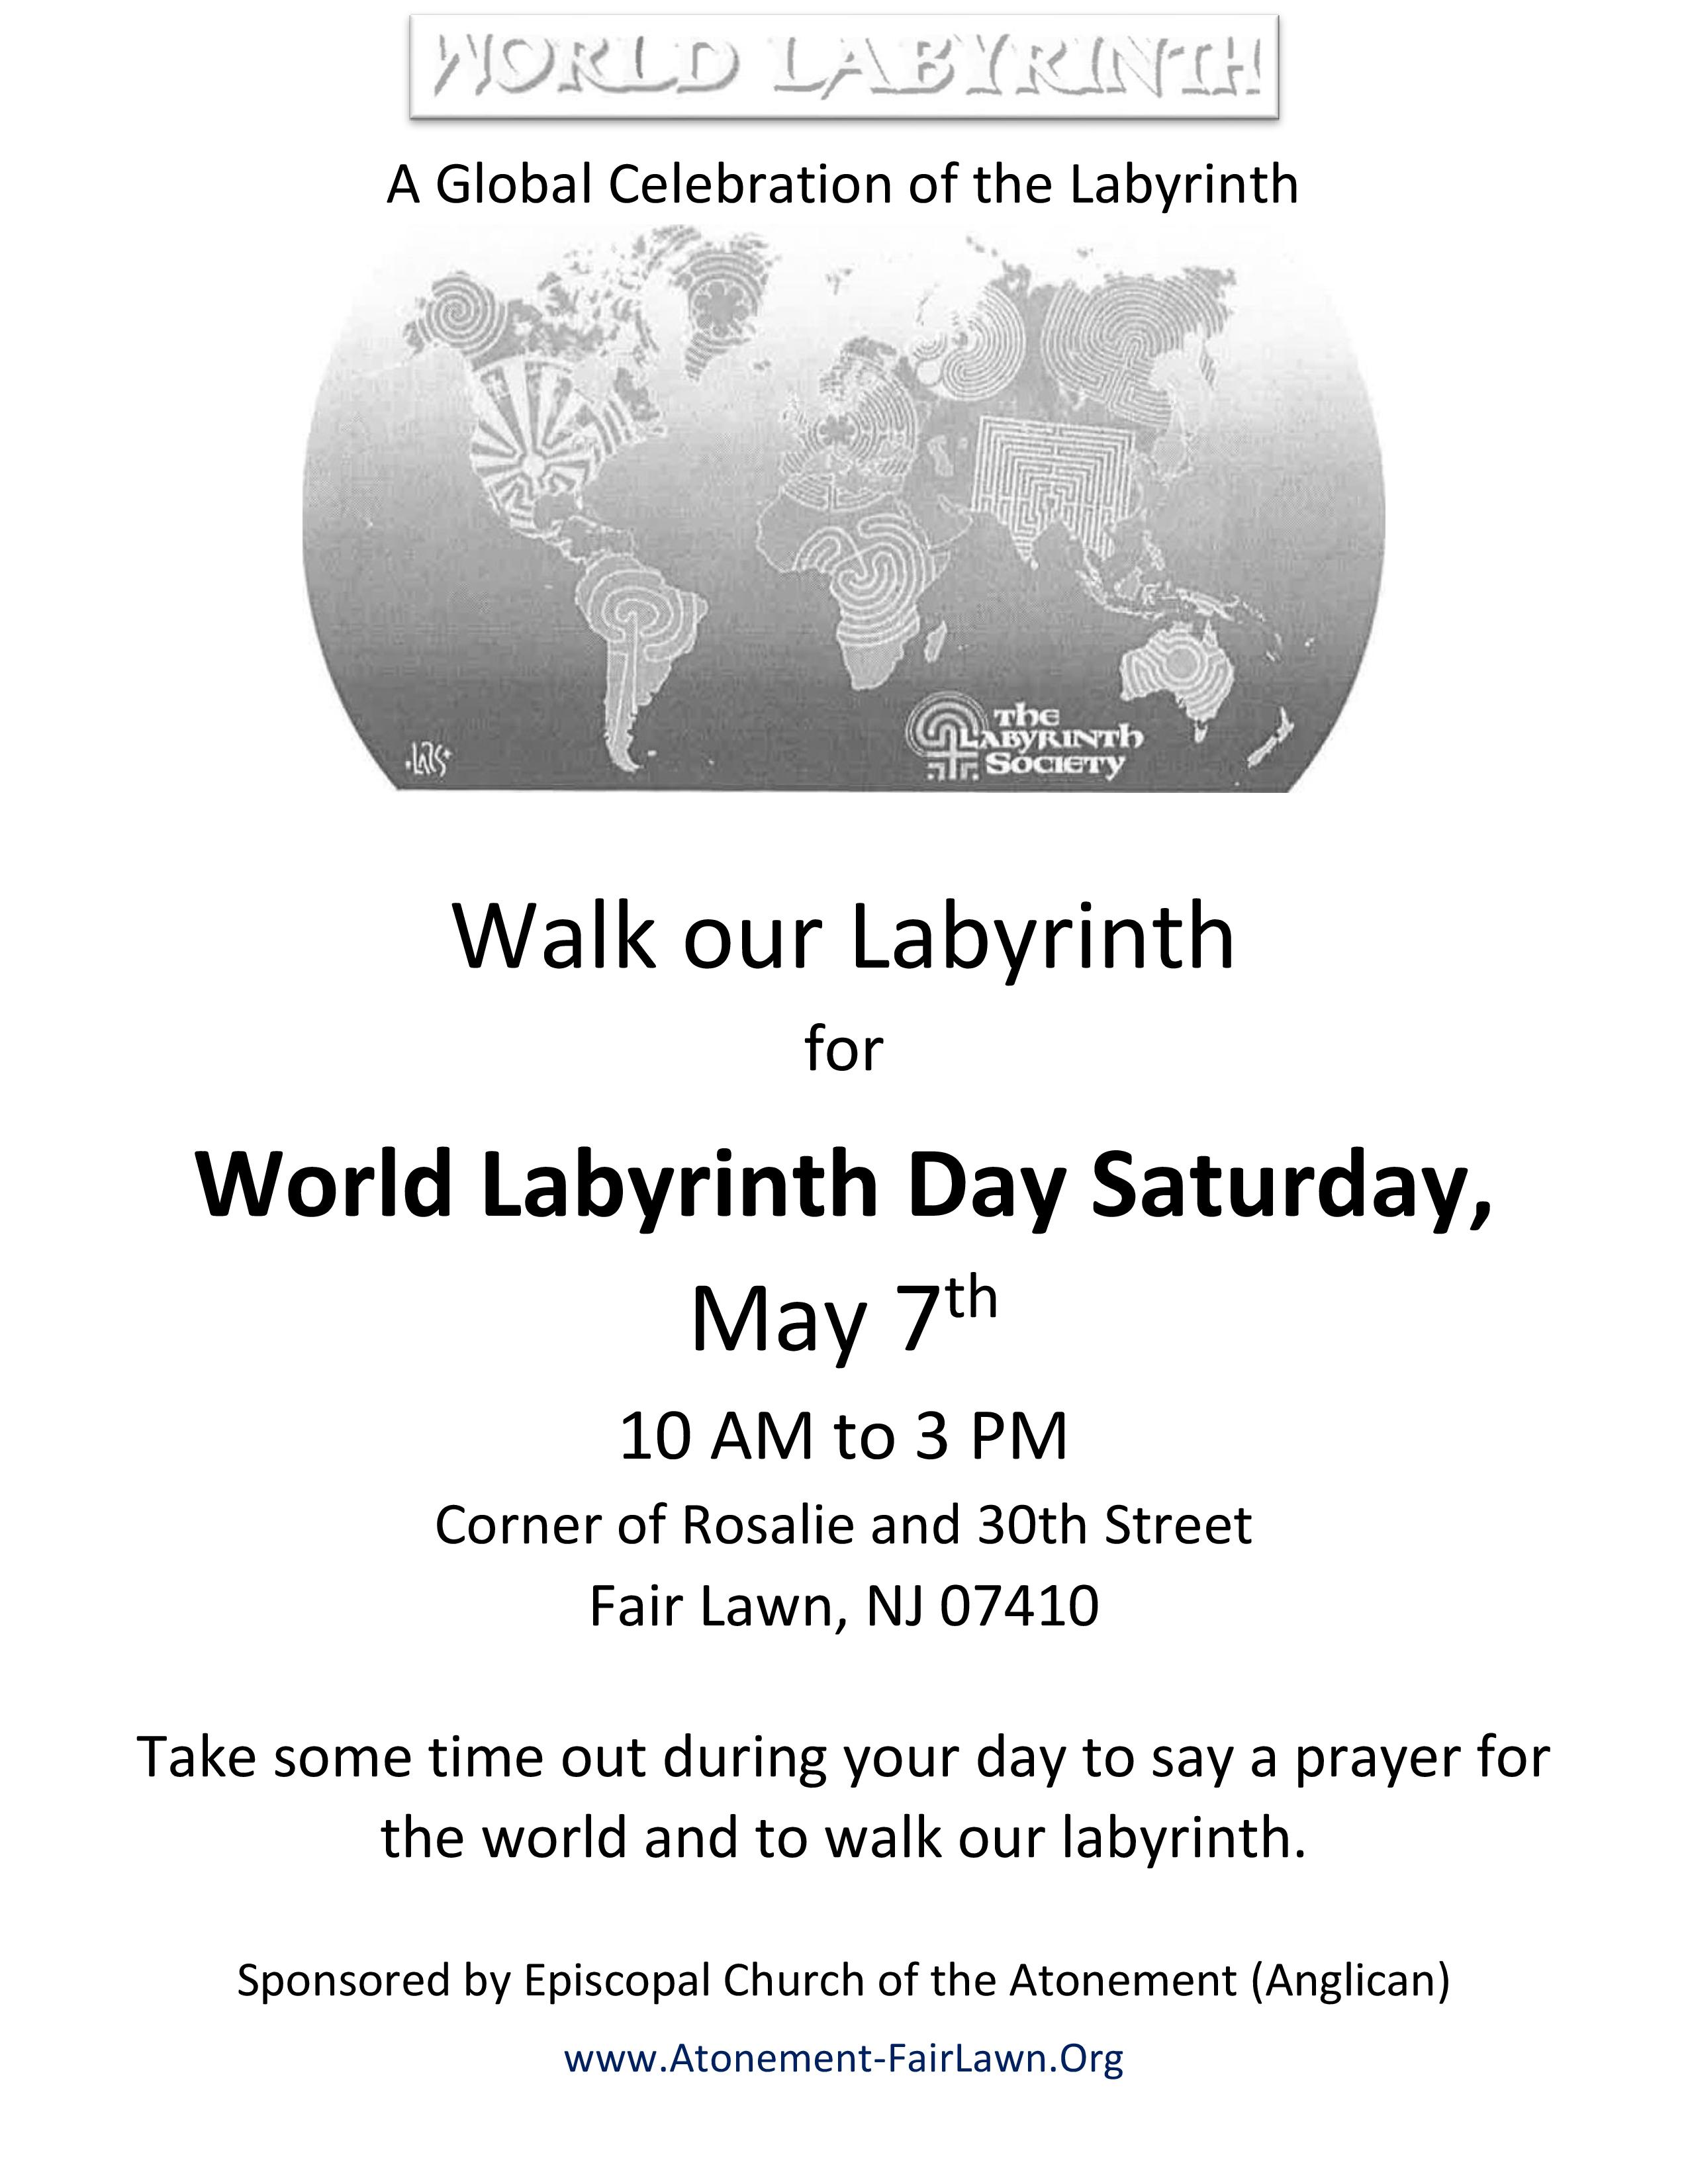 Atonement's World Labyrinth Day 2016 Flyer